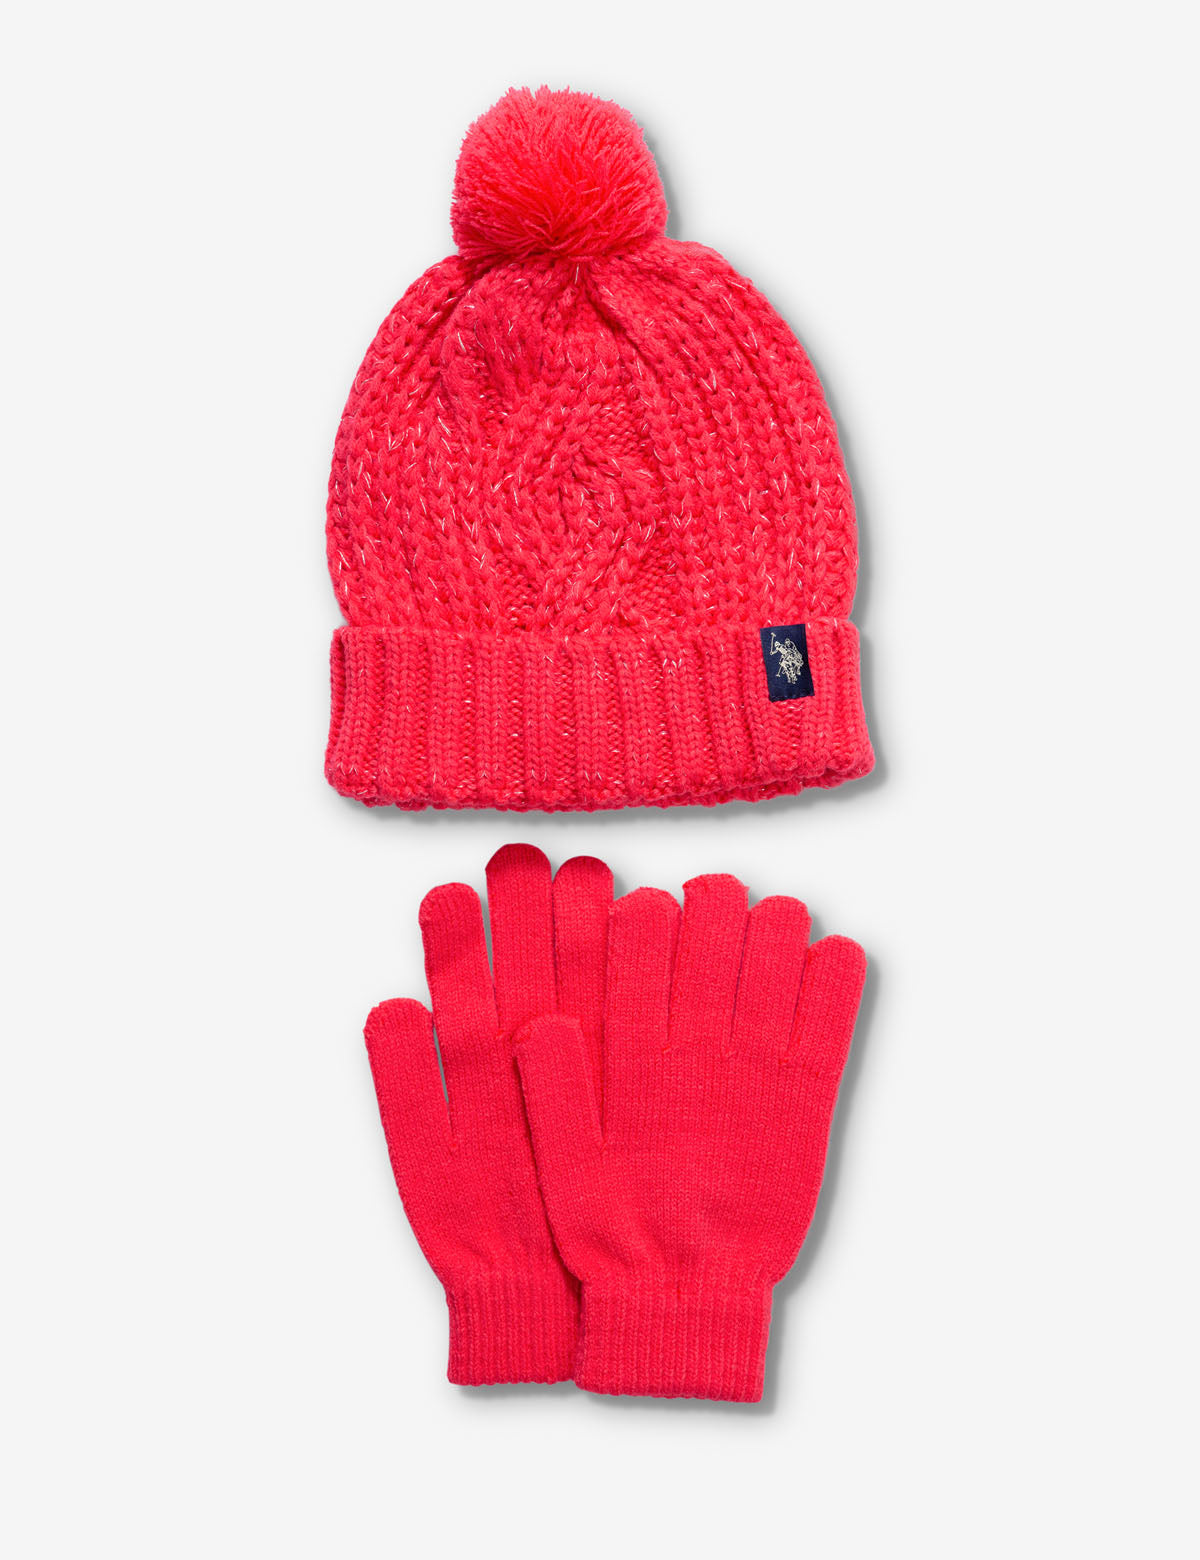 CABLE KNIT BEANIE AND GLOVE SET